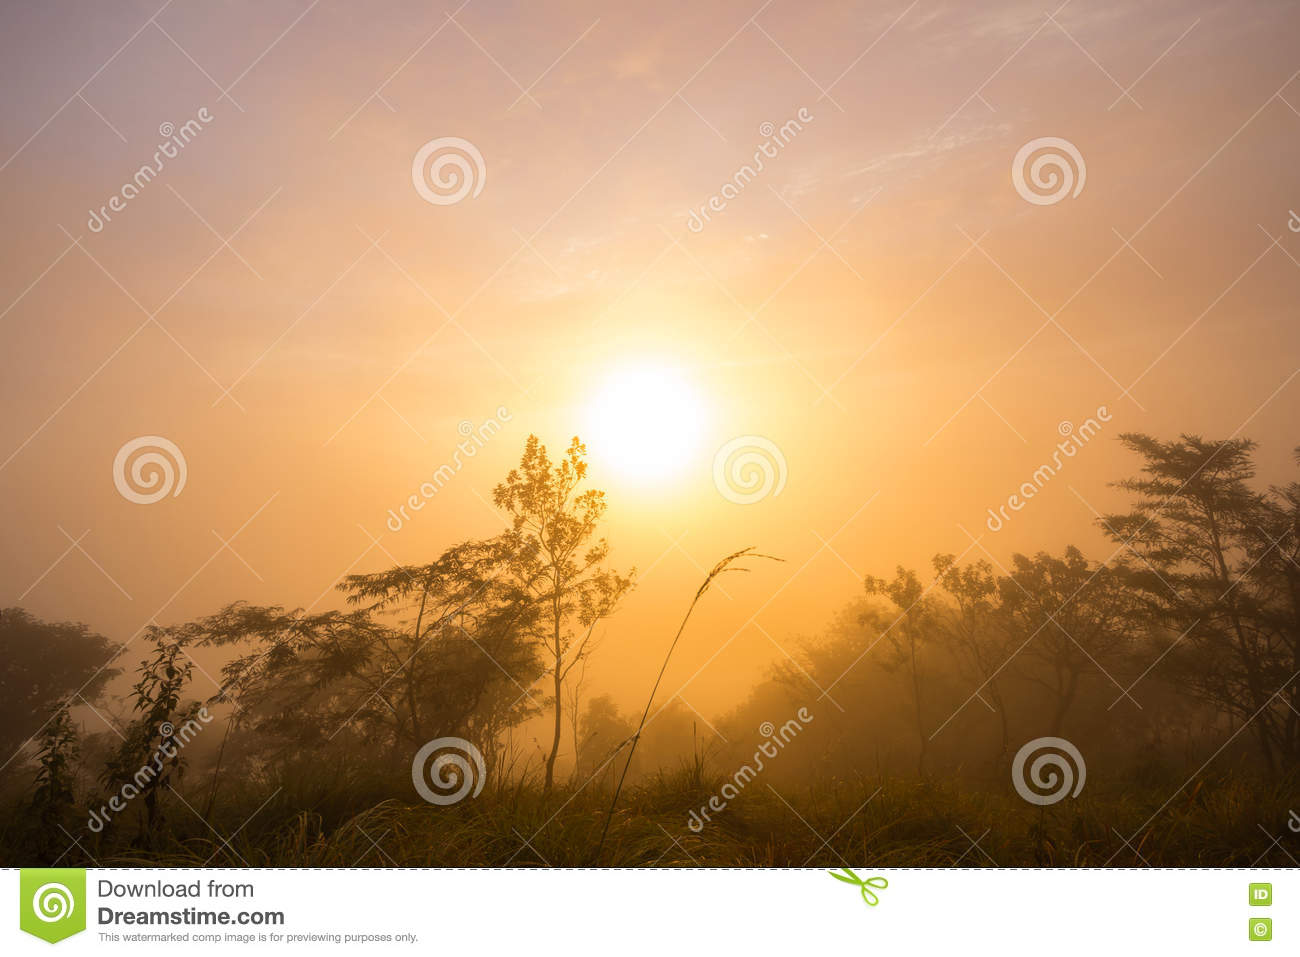 The first rays of the rising sun